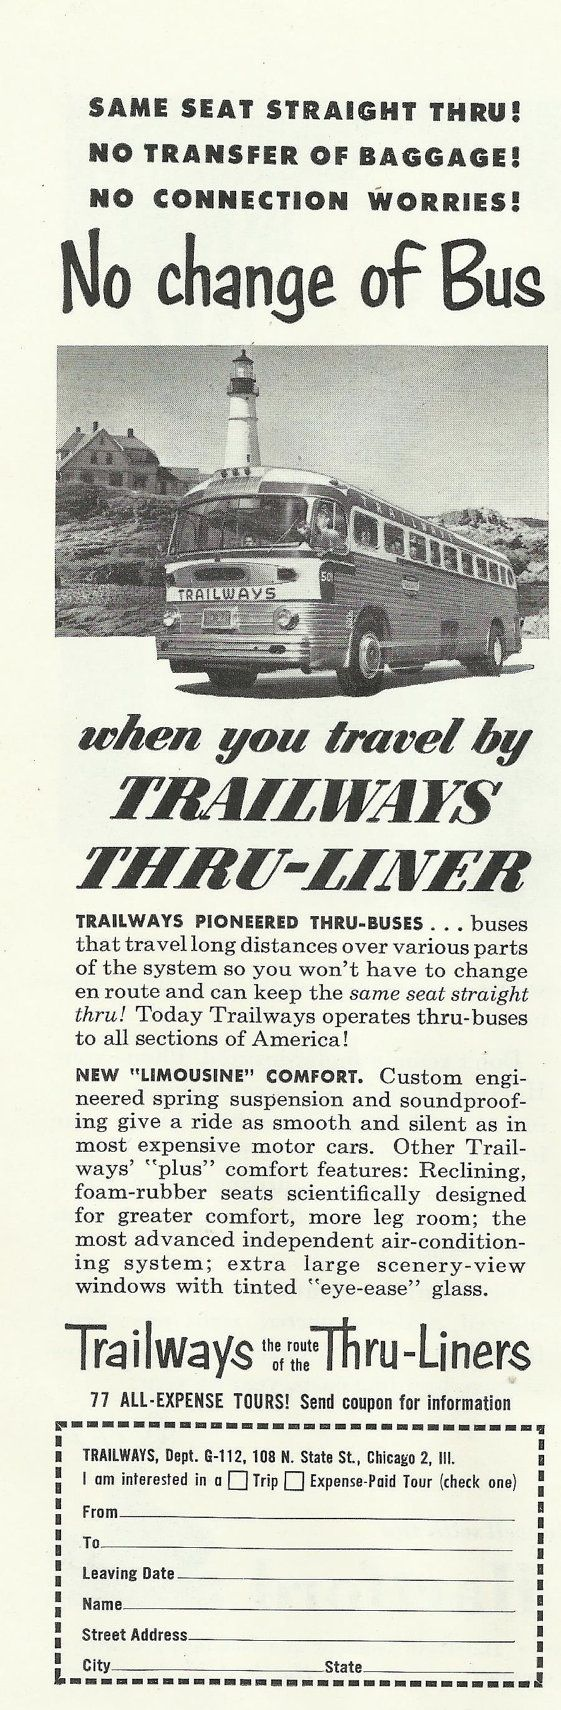 """Trailways Bus Line Original 1952 Vintage Print Ad Black and White Photo """"No Change of Bus When You Travel by Trailways Thru-Liner"""""""